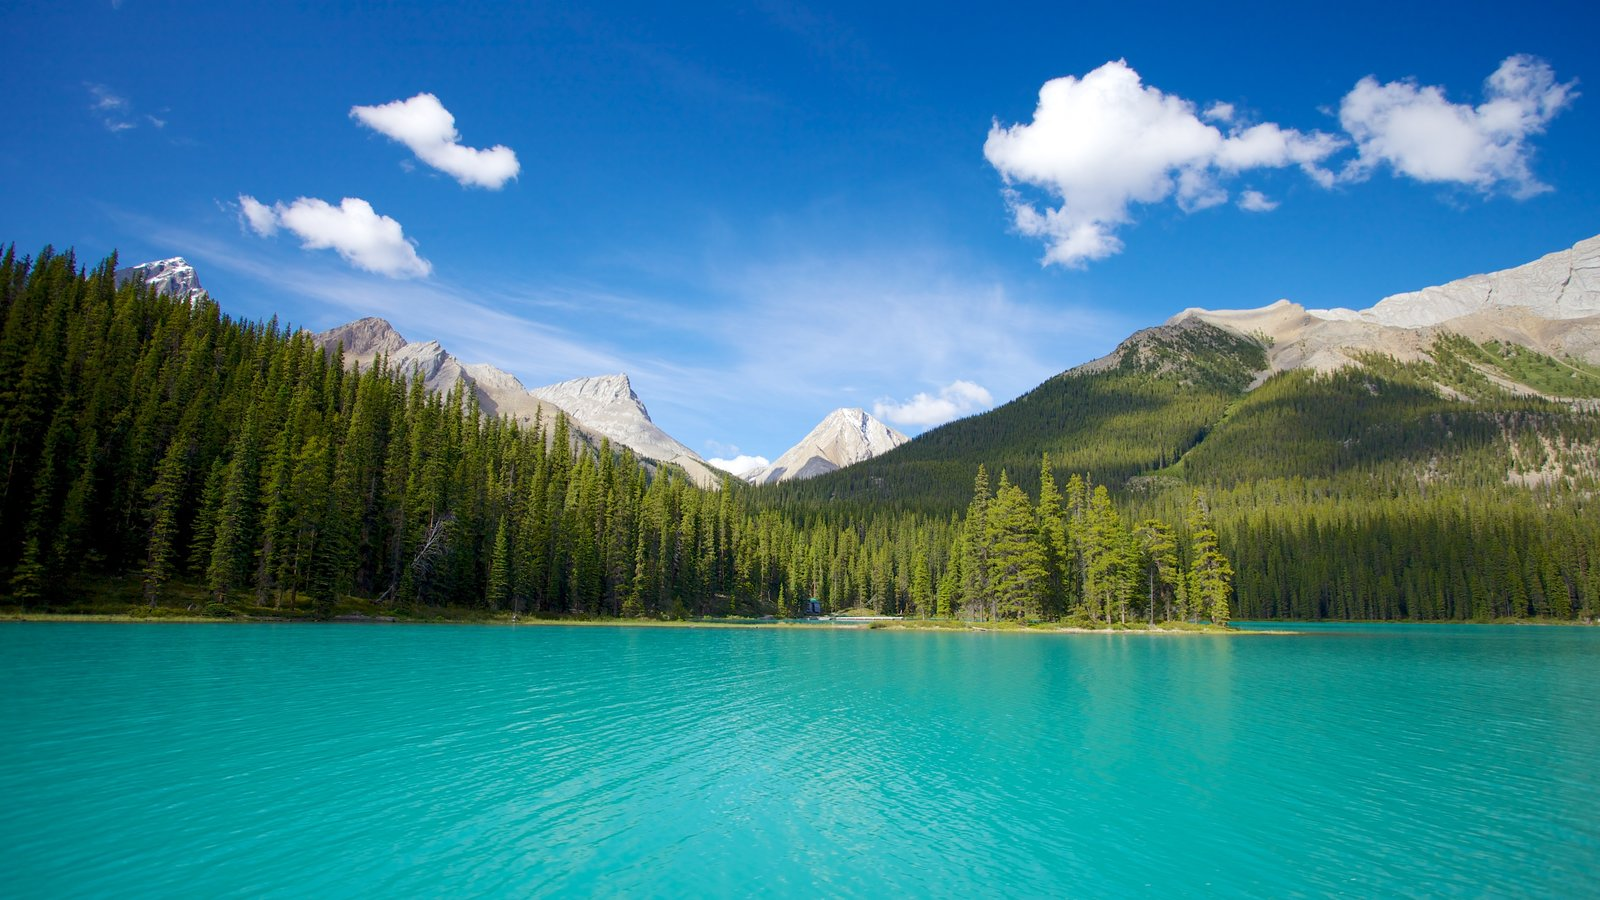 Maligne Lake featuring forest scenes, mountains and landscape views